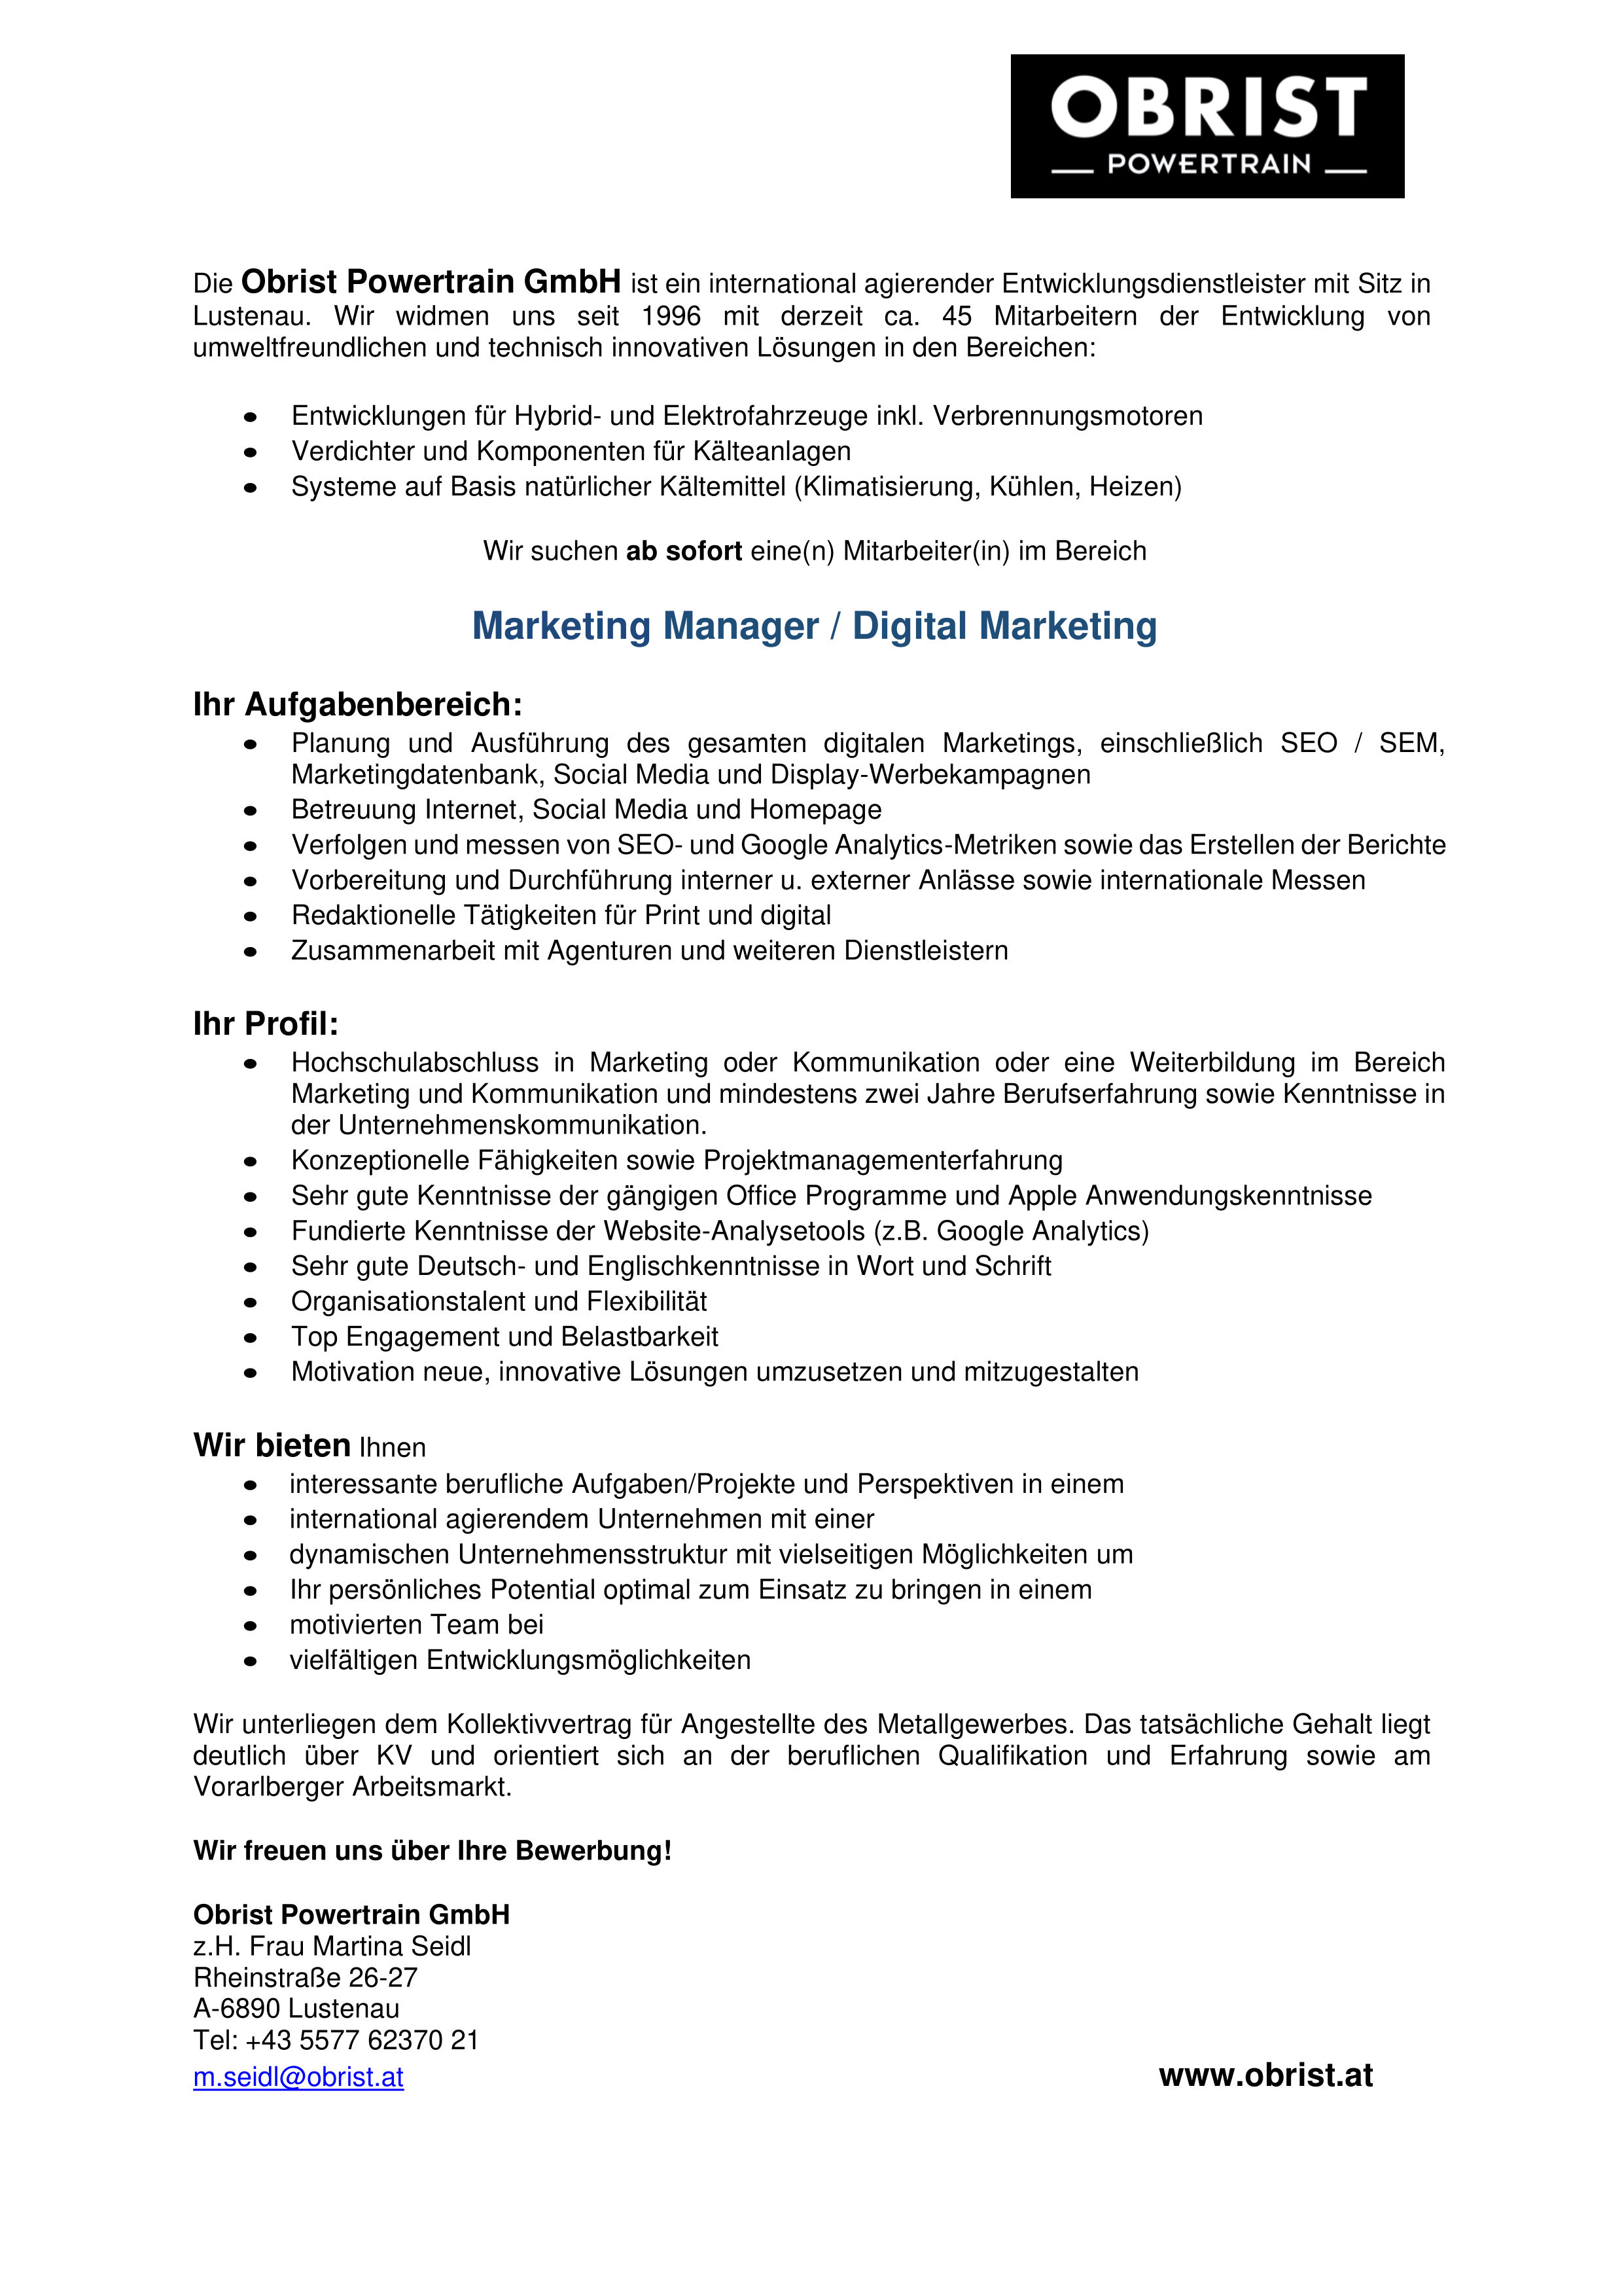 Marketing Manager / Digital Marketing